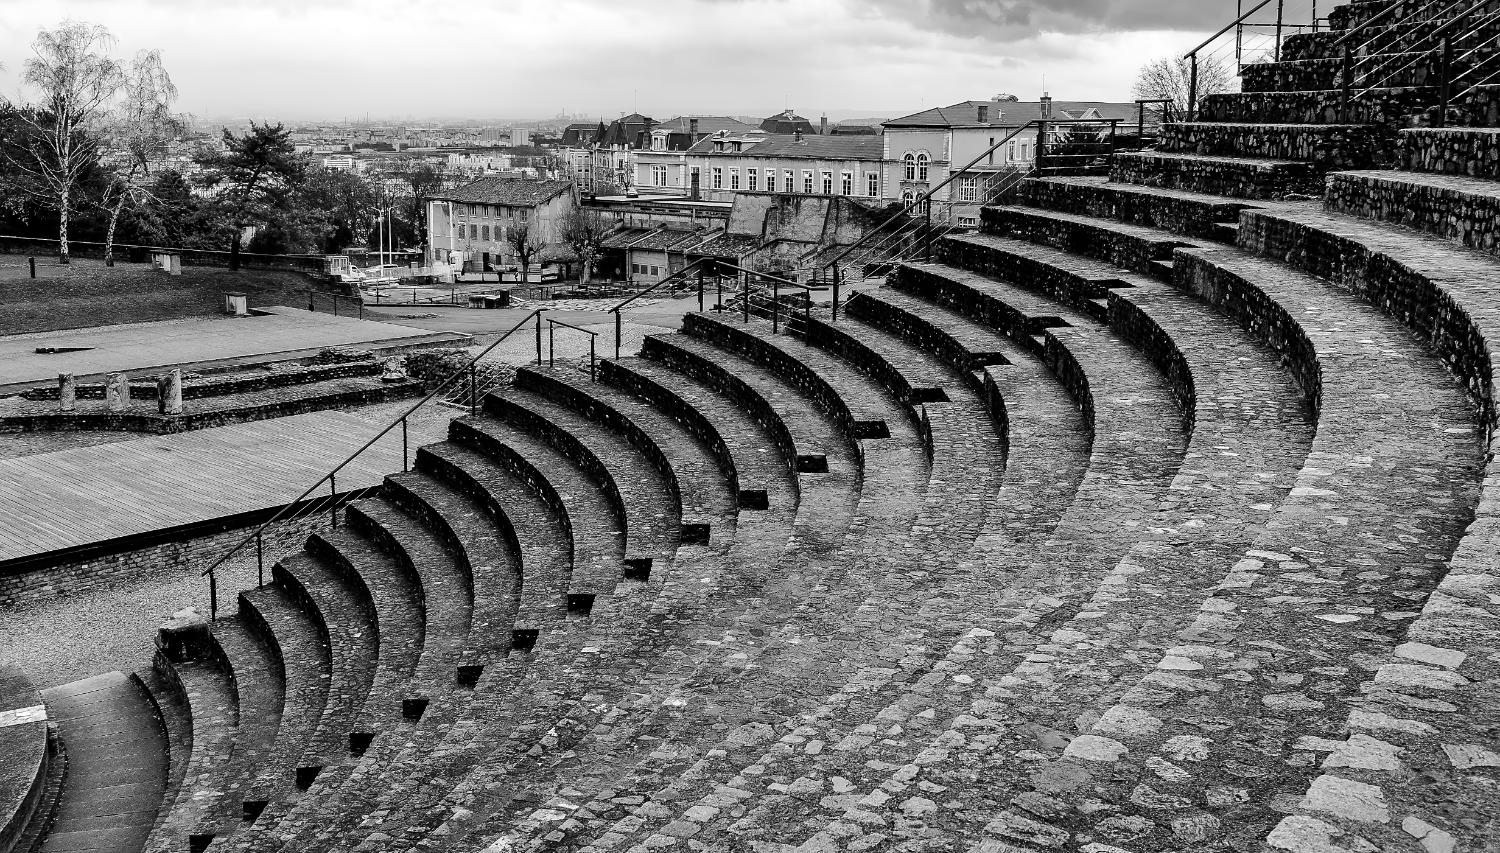 Grand Roman Theatre of Lyon